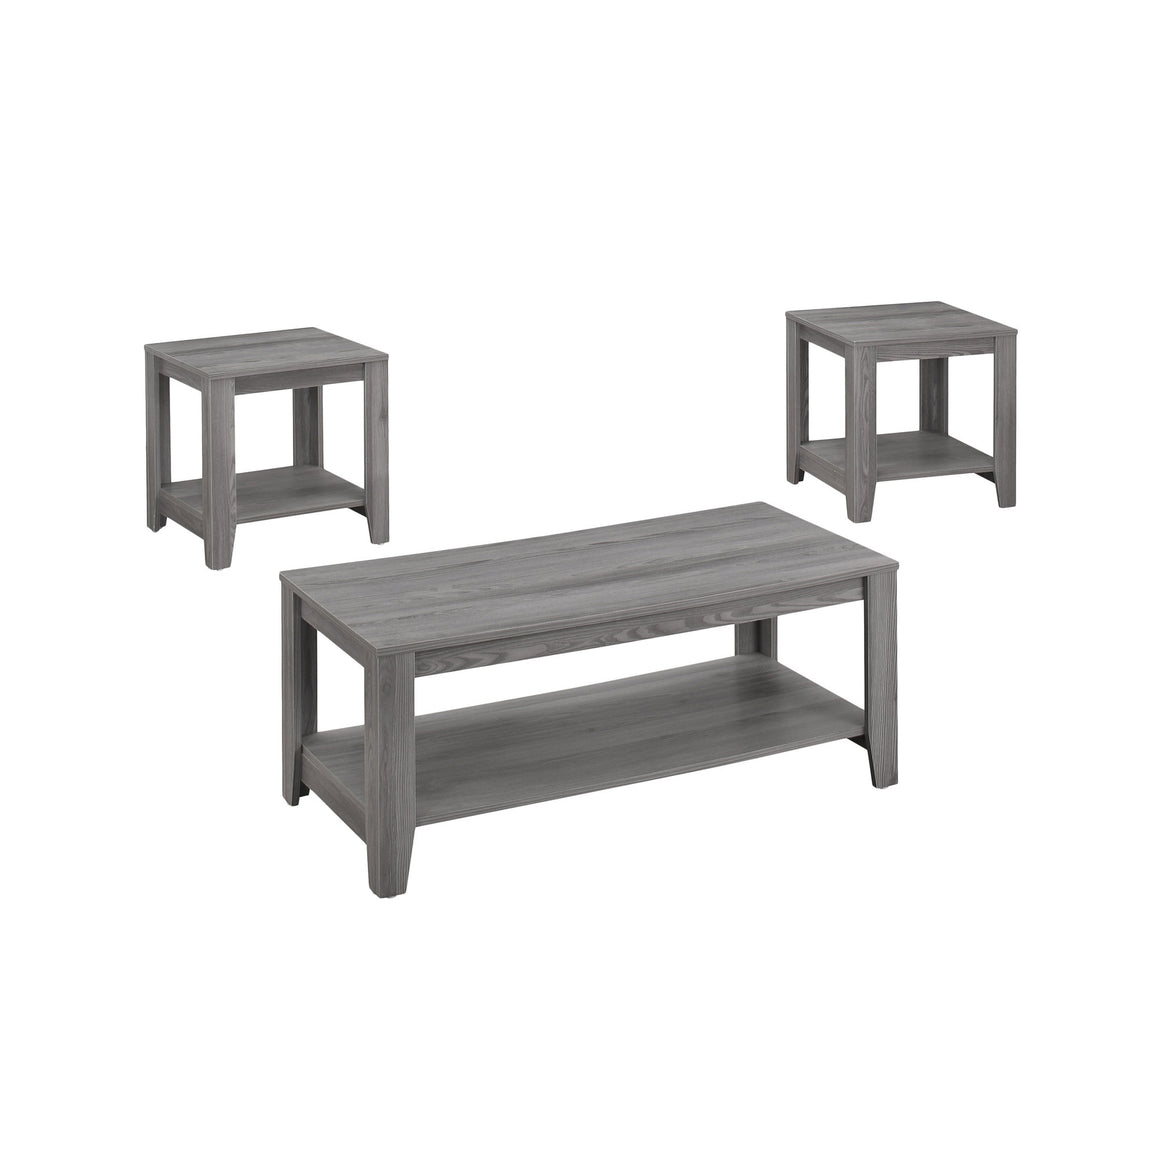 Upton 3pcs Table Set Grey